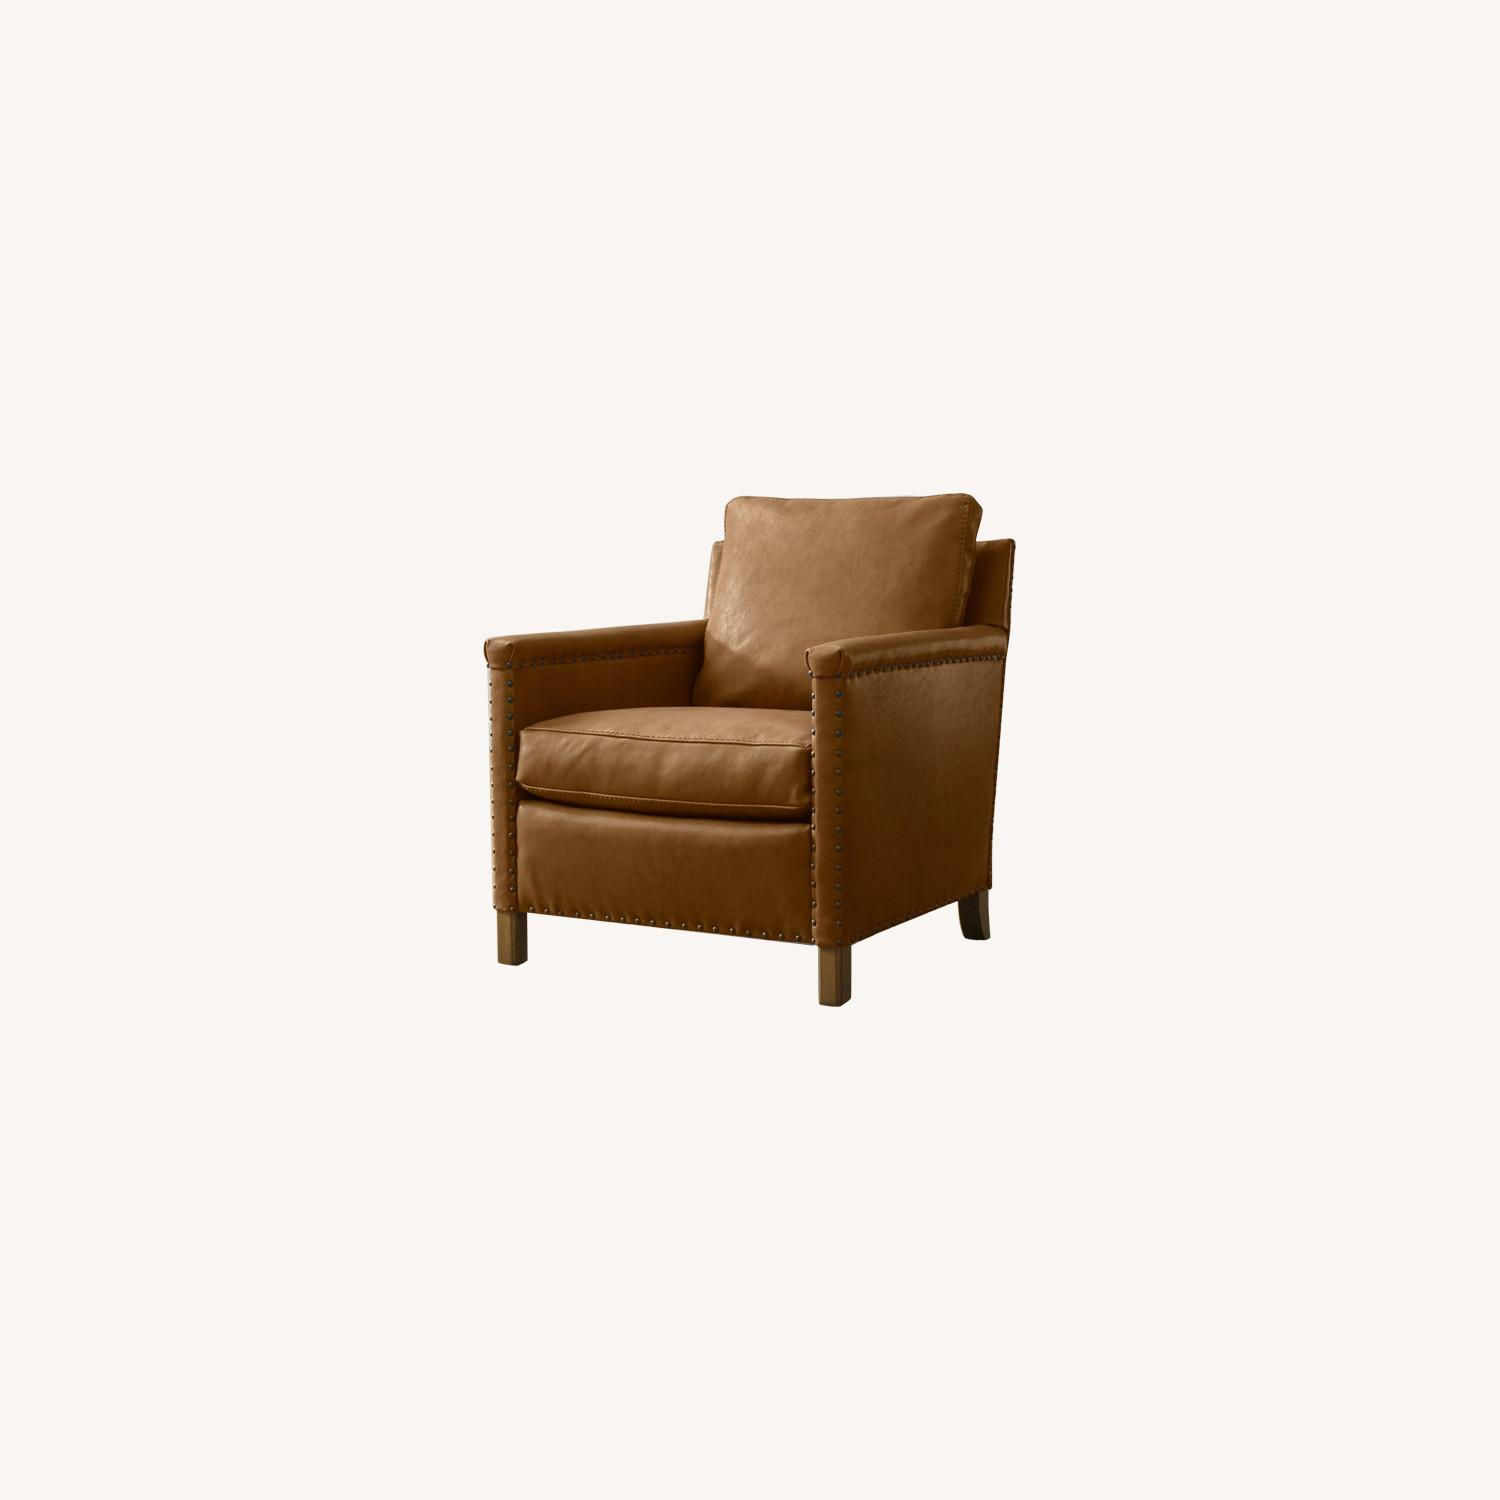 Crate & Barrel Soft Brown Leather Armchair - image-0